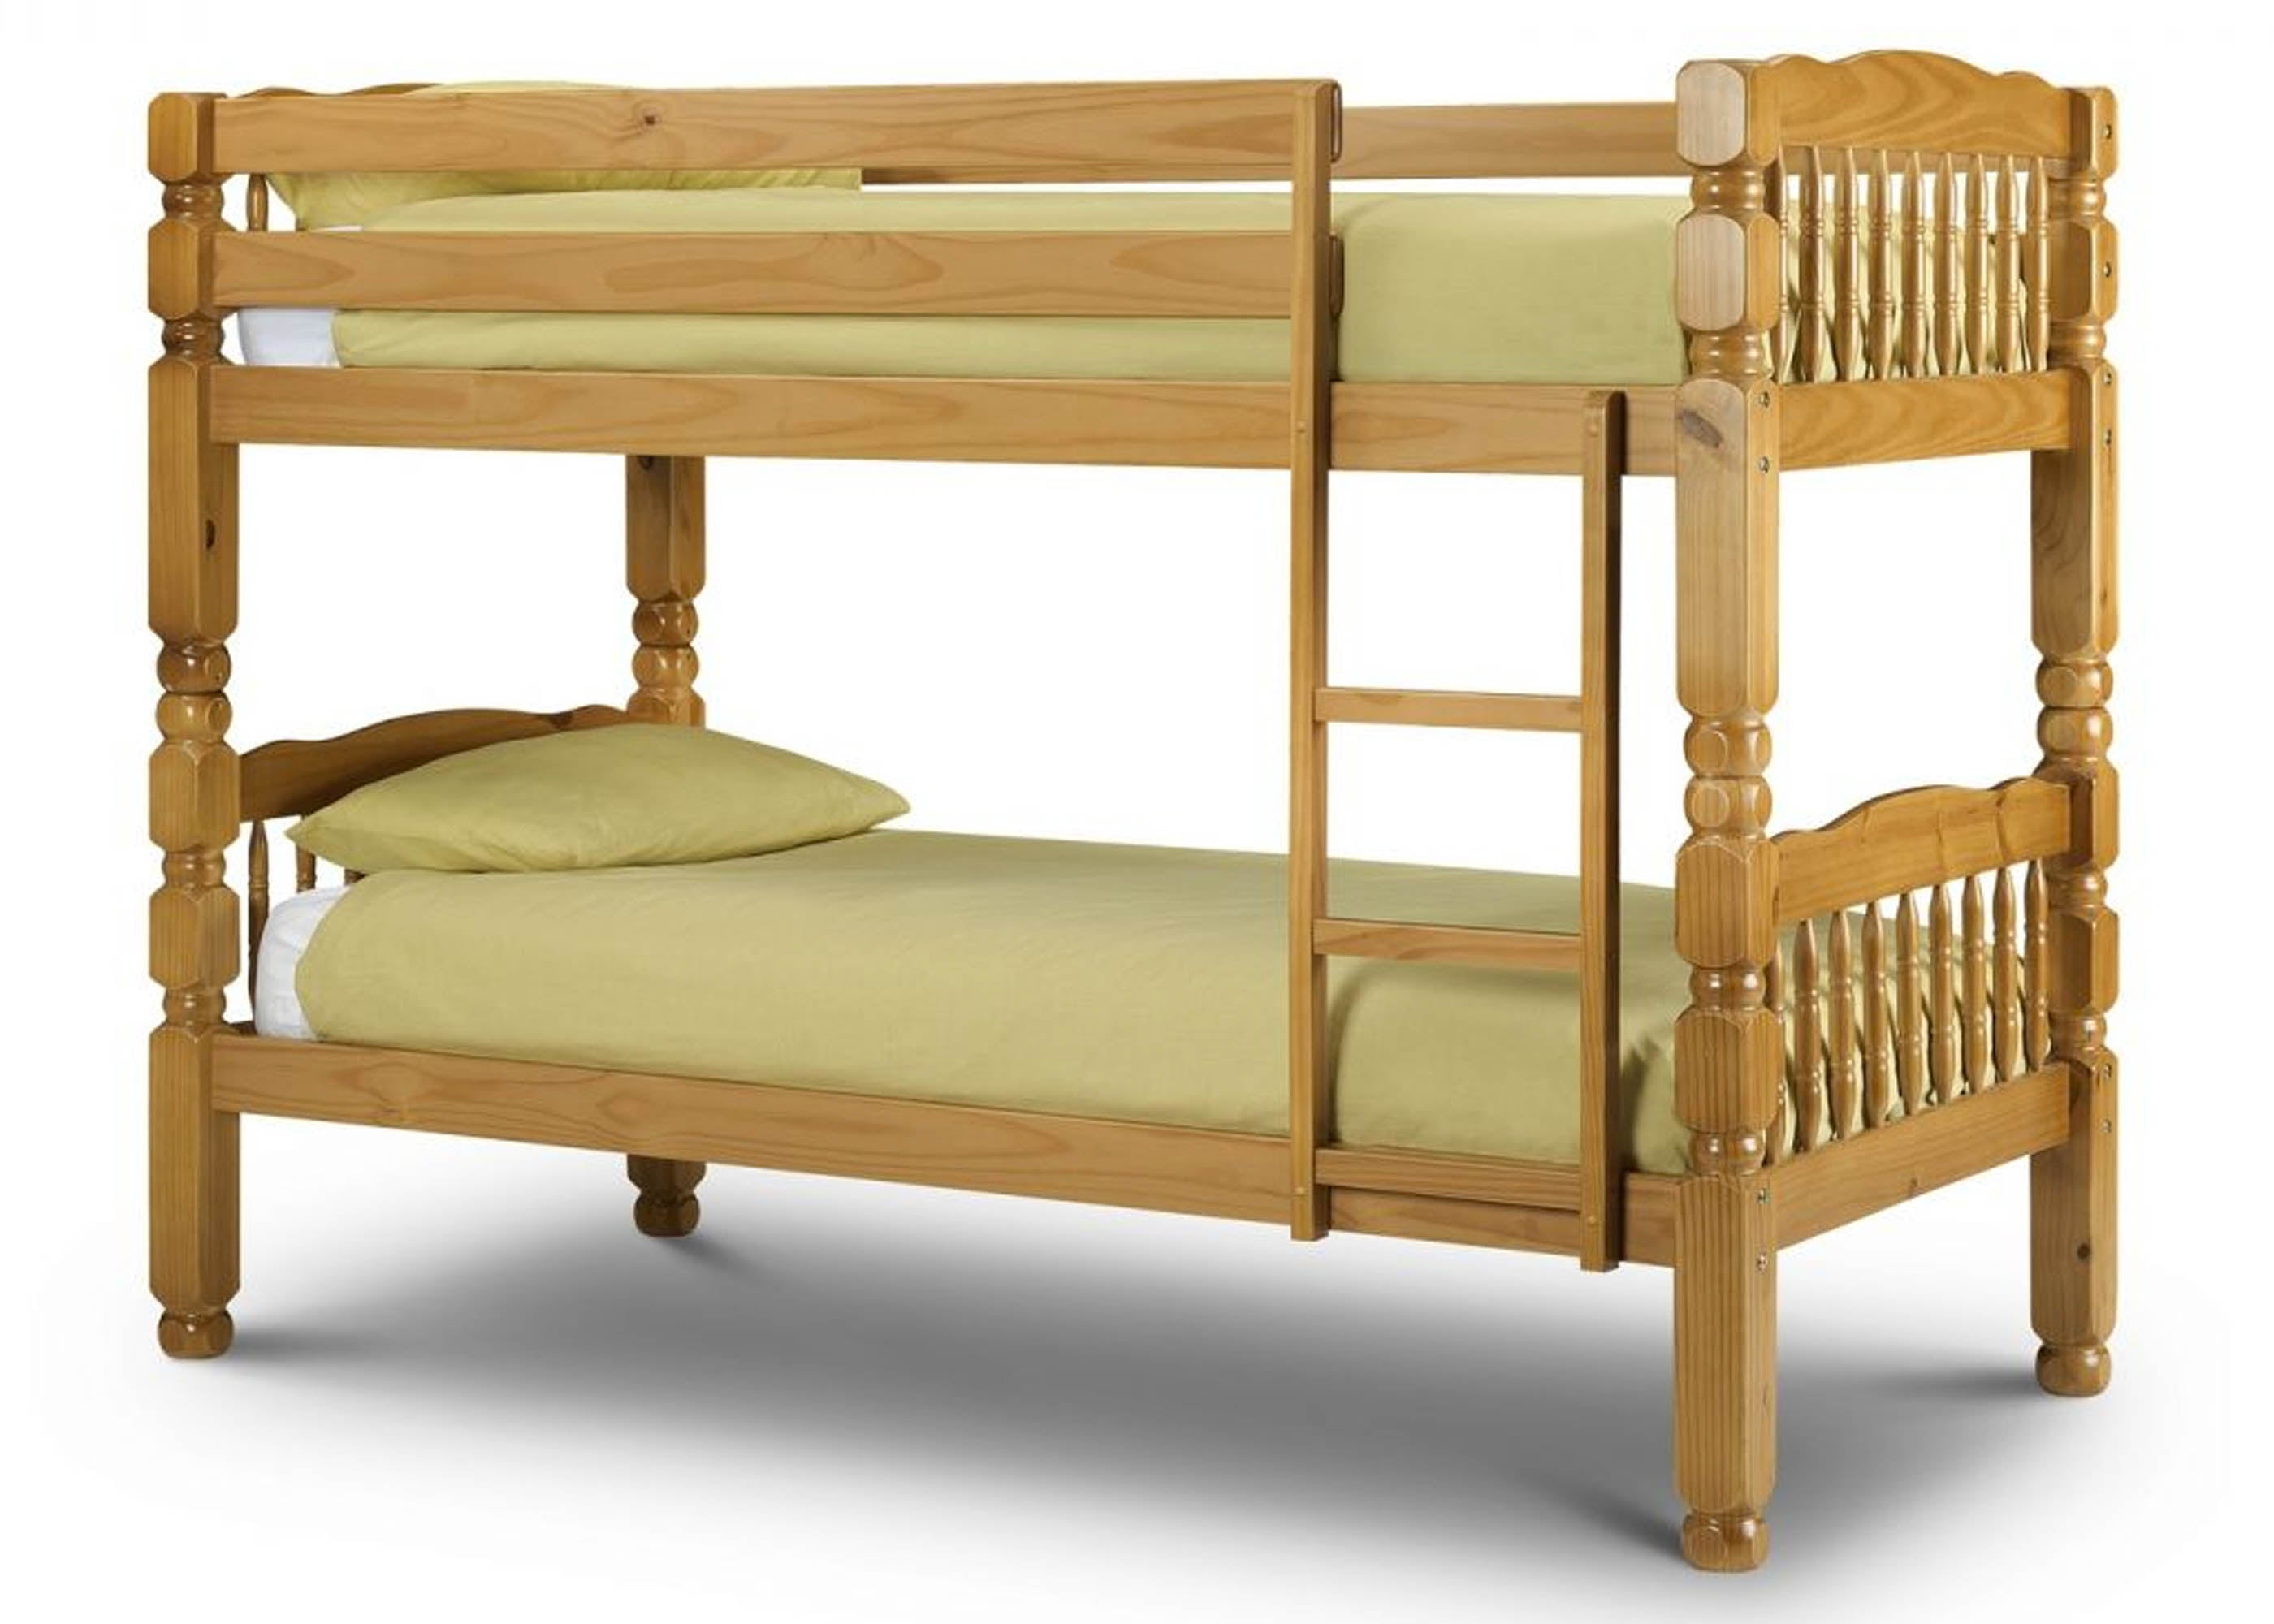 Picture of: Chunky Heavy Duty Wooden Bunk Bed Reinforced Beds